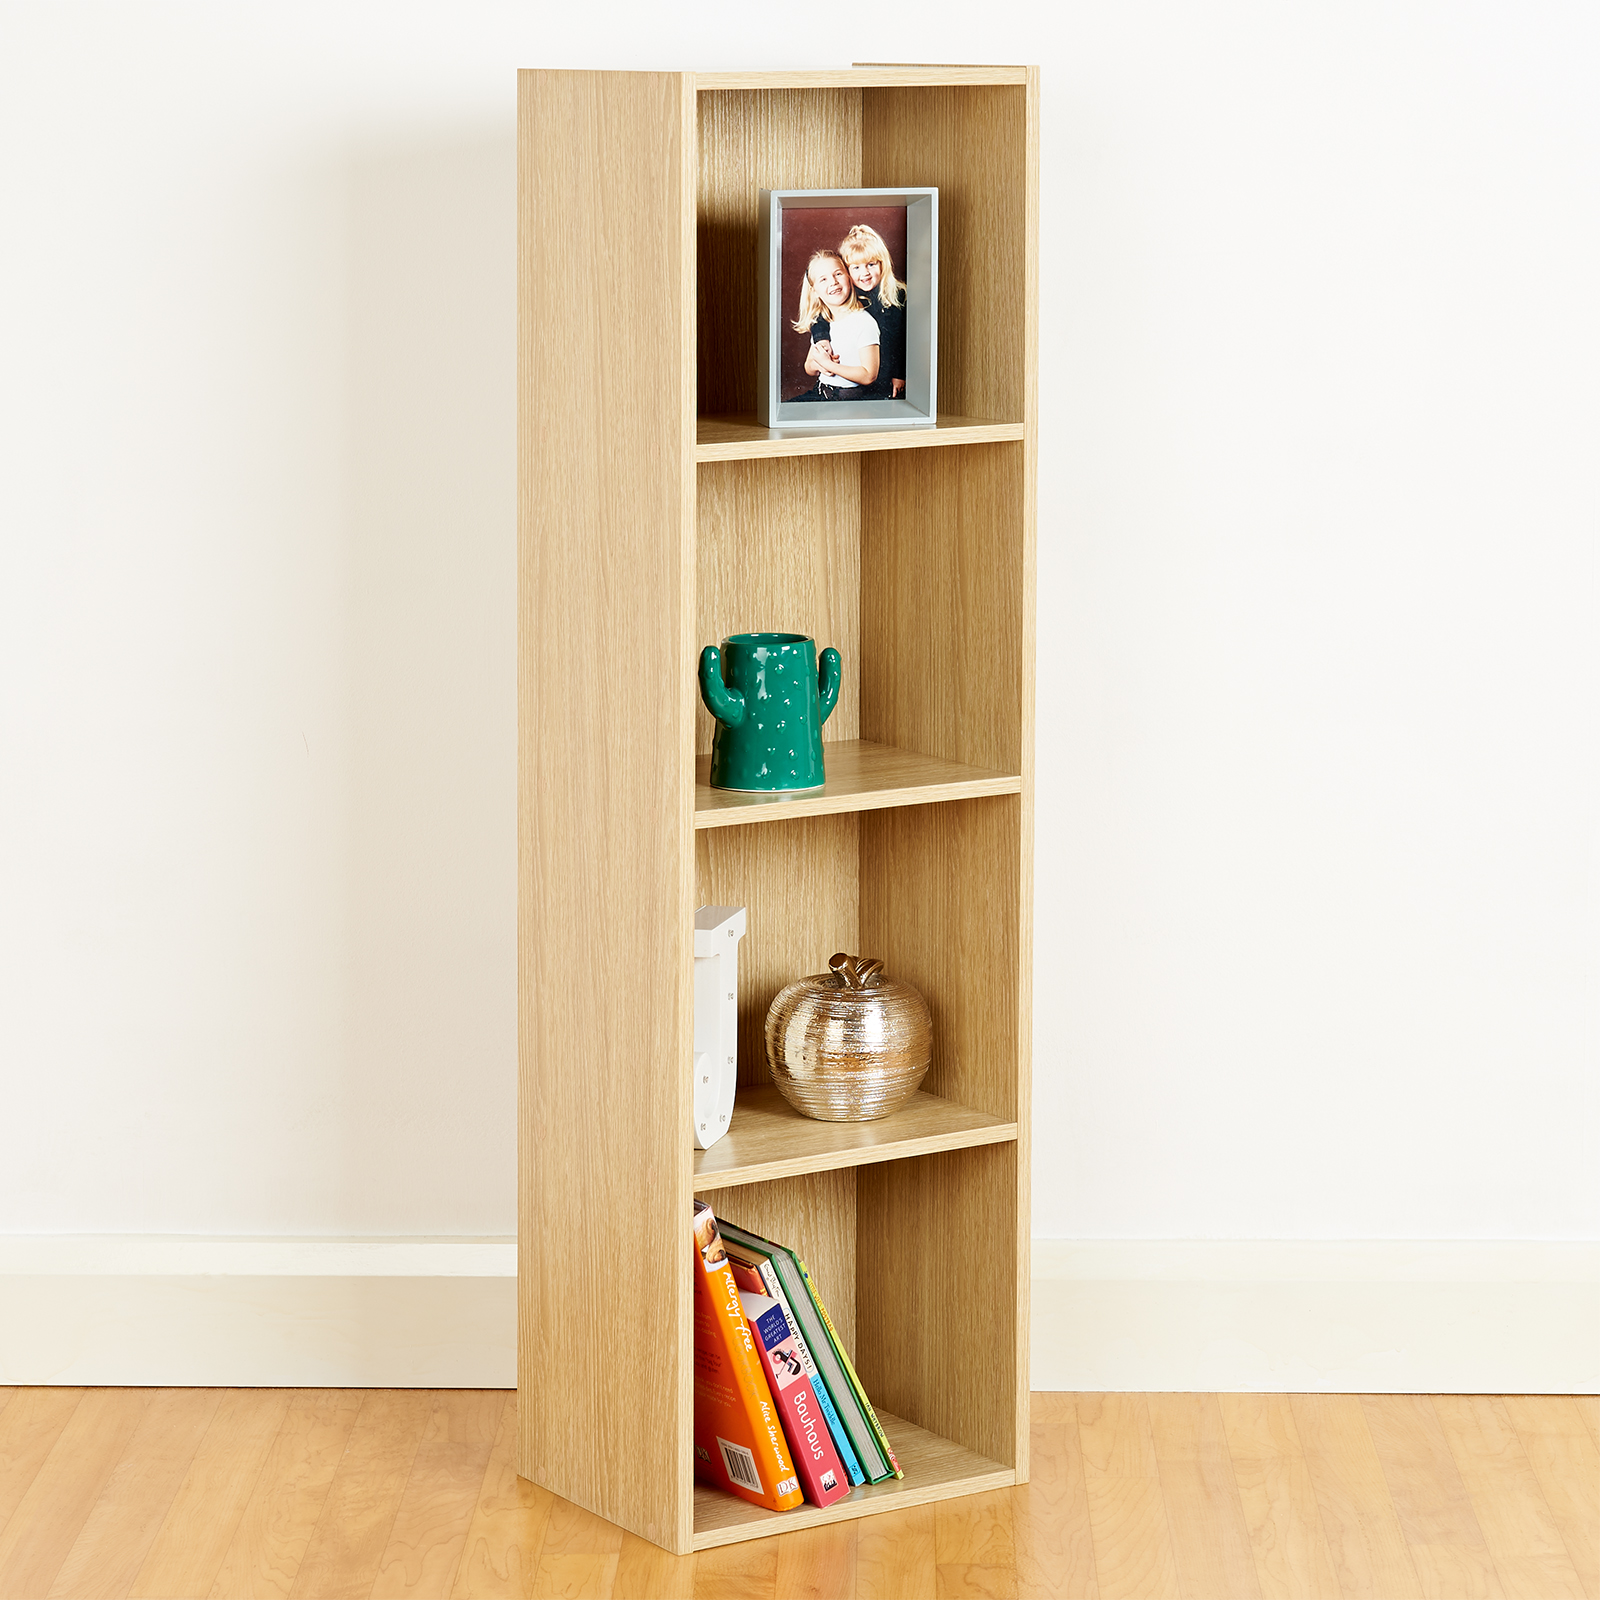 Details About 4 Tier Wooden Oak Cube Bookcase Storage Display Unit Modular Shelving Shelves